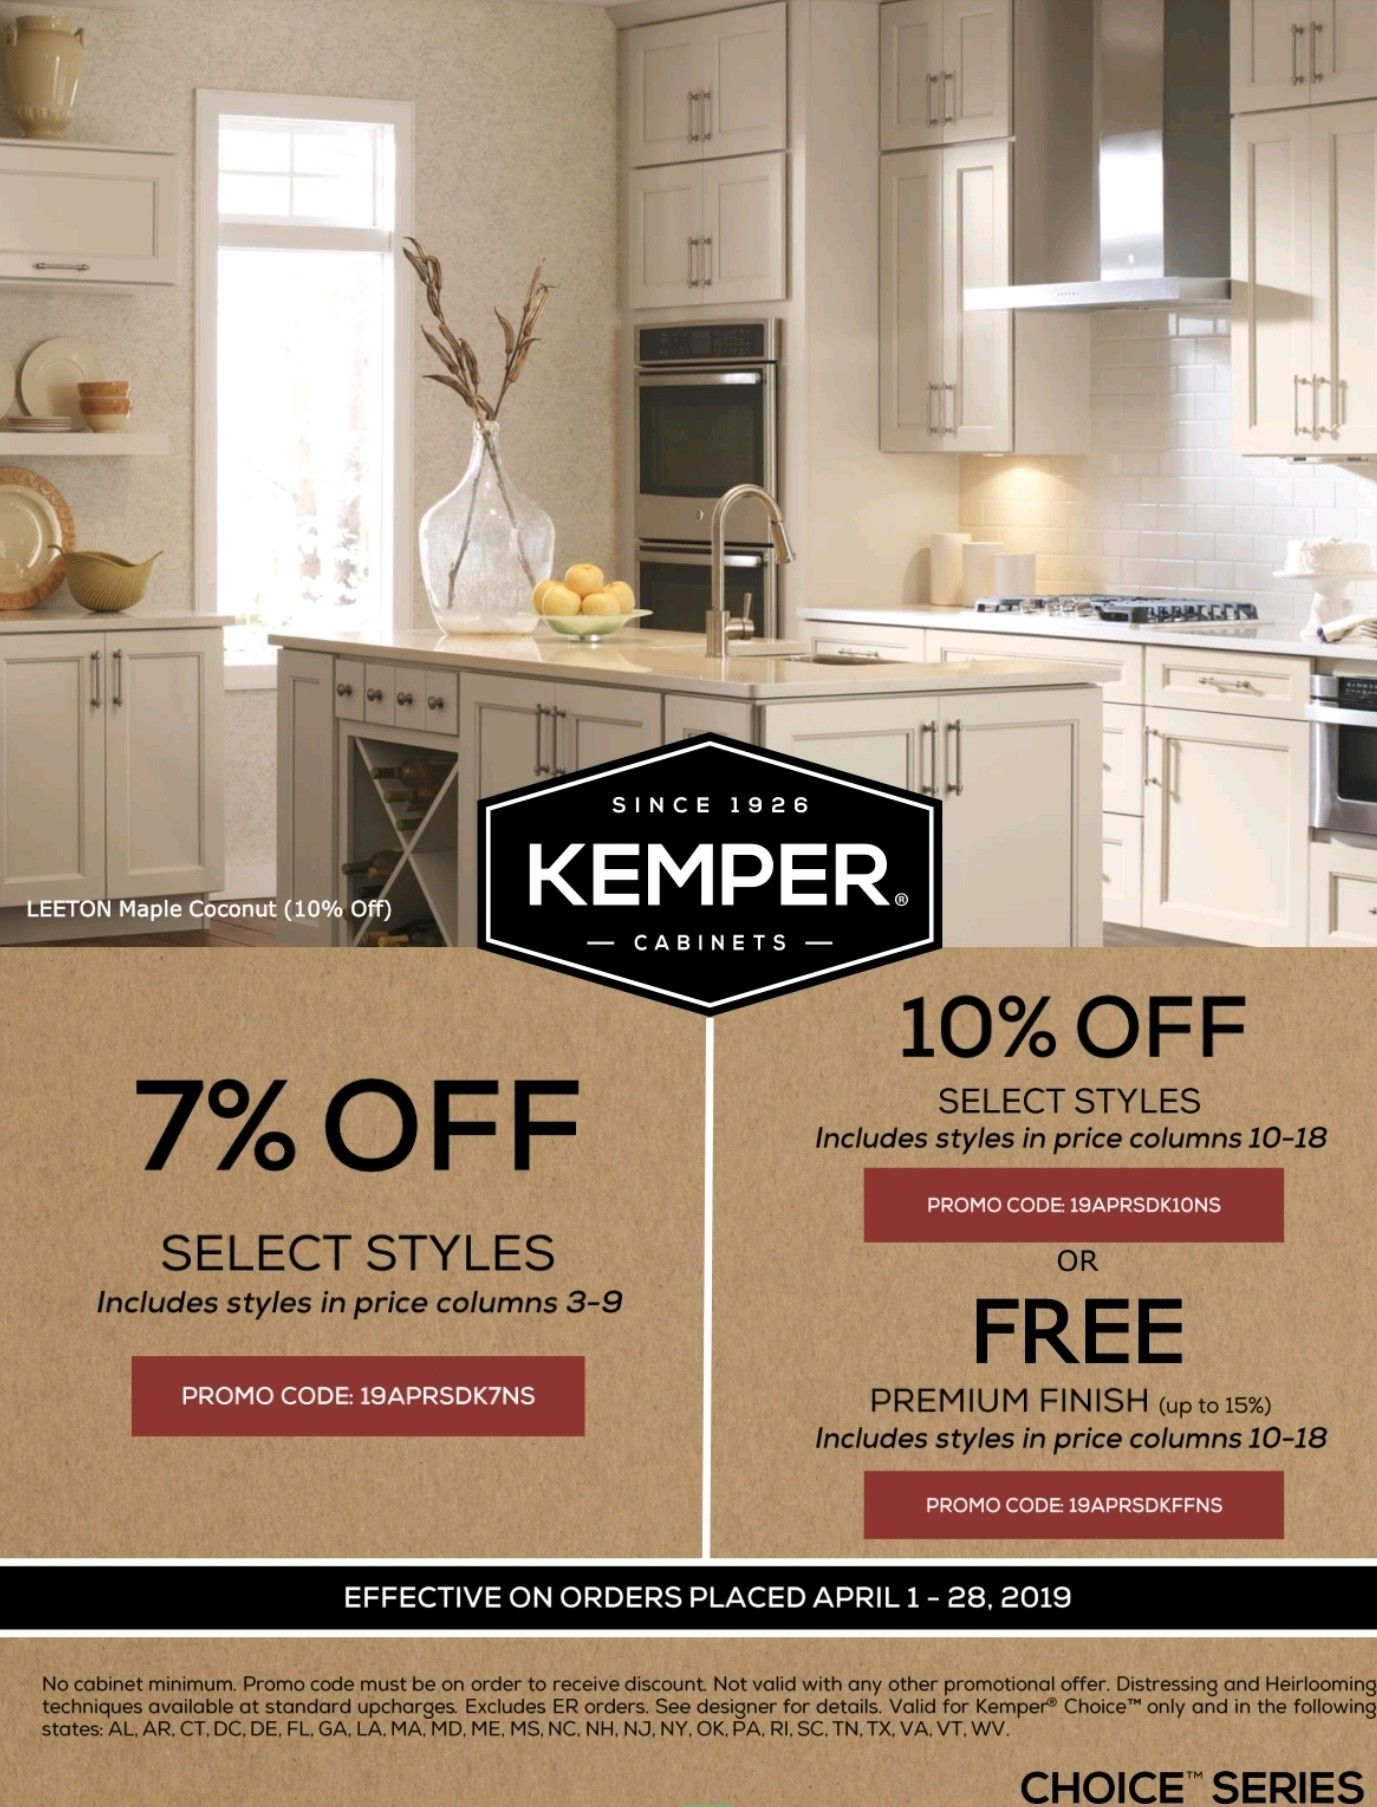 Kemper Choice Cabinetry S Huge Spring Savings 7 10 Off Select